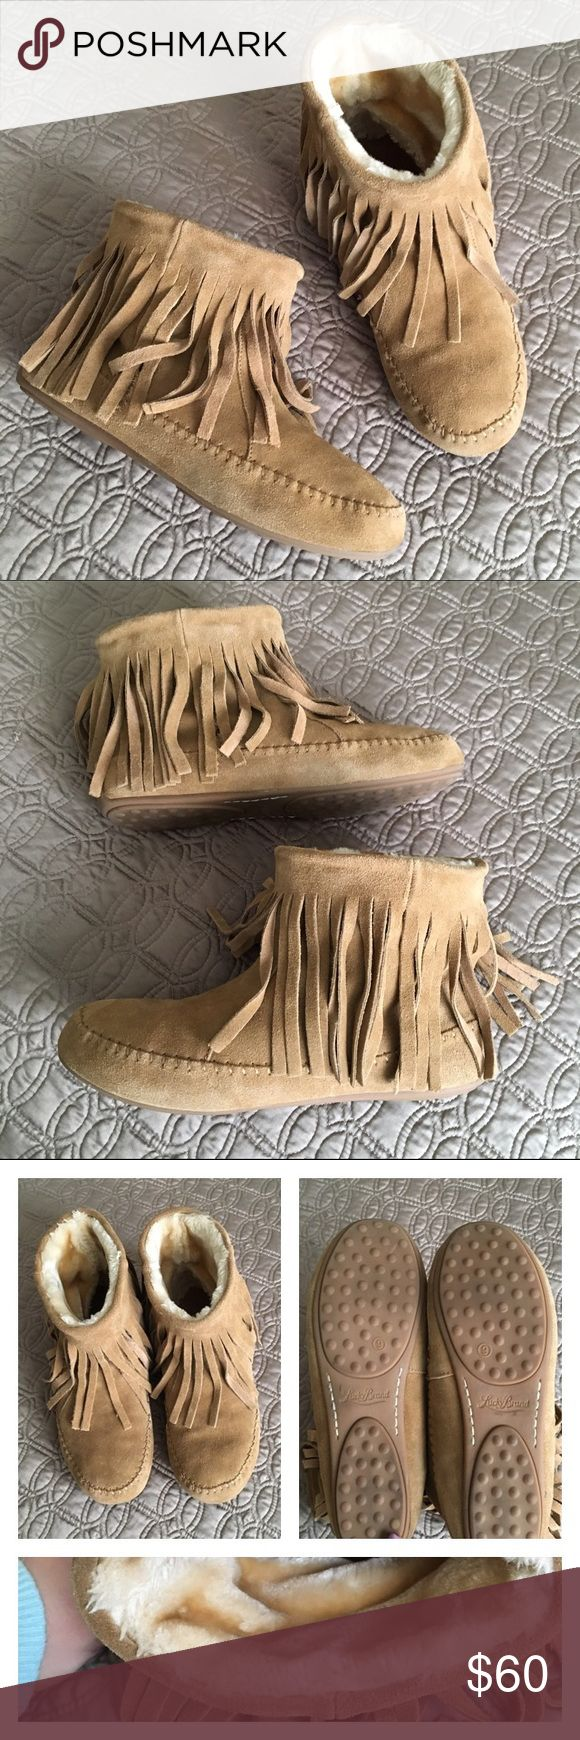 16 best boots images on pinterest | moccasin boots, moccasins and